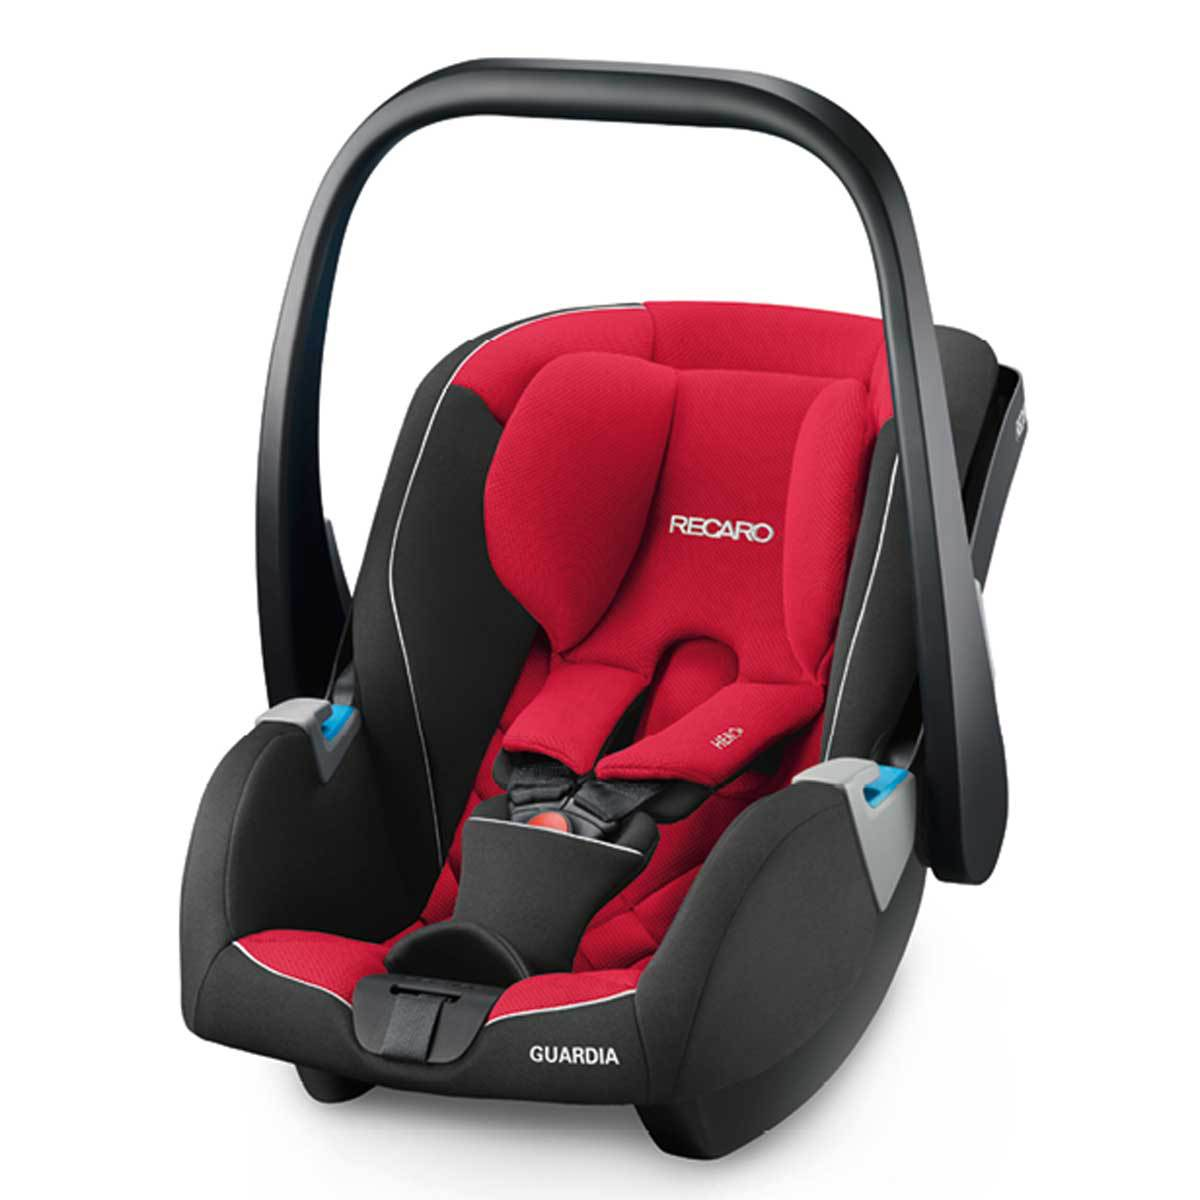 recaro si ge auto guardia isofix groupe 0 racing red si ge auto et coque recaro sur l. Black Bedroom Furniture Sets. Home Design Ideas